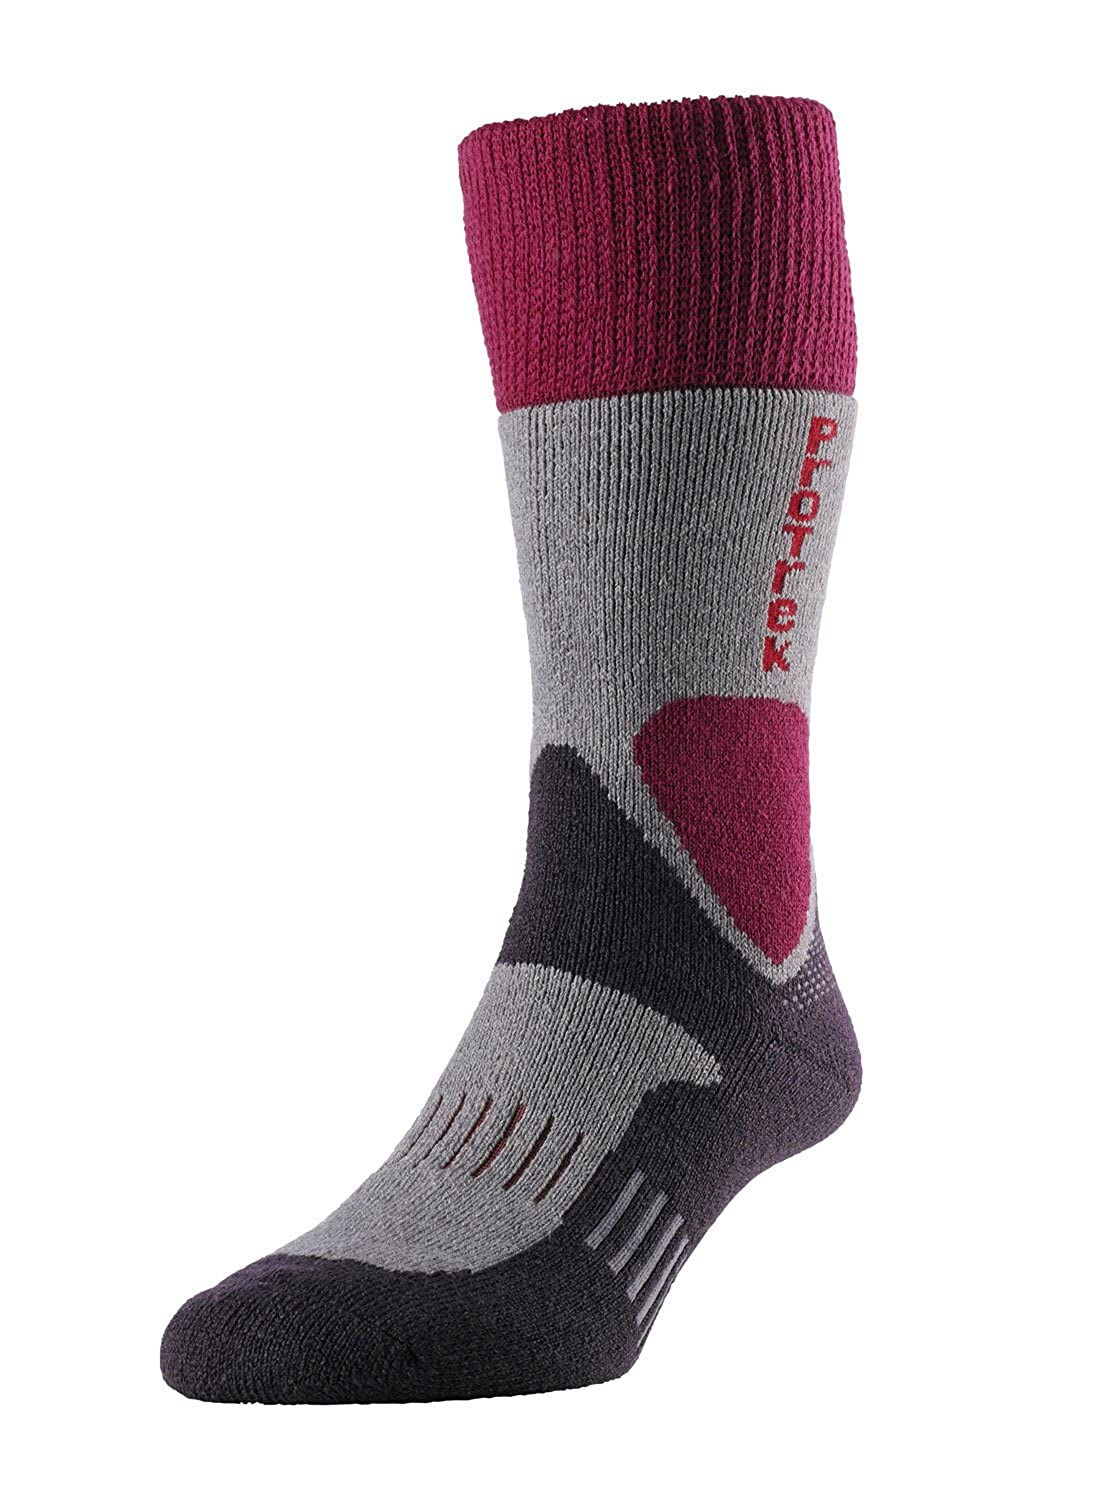 Ladies 1 Pair HJ Hall ProTrek Challenger Merino Wool Technical Heavy Weight Socks